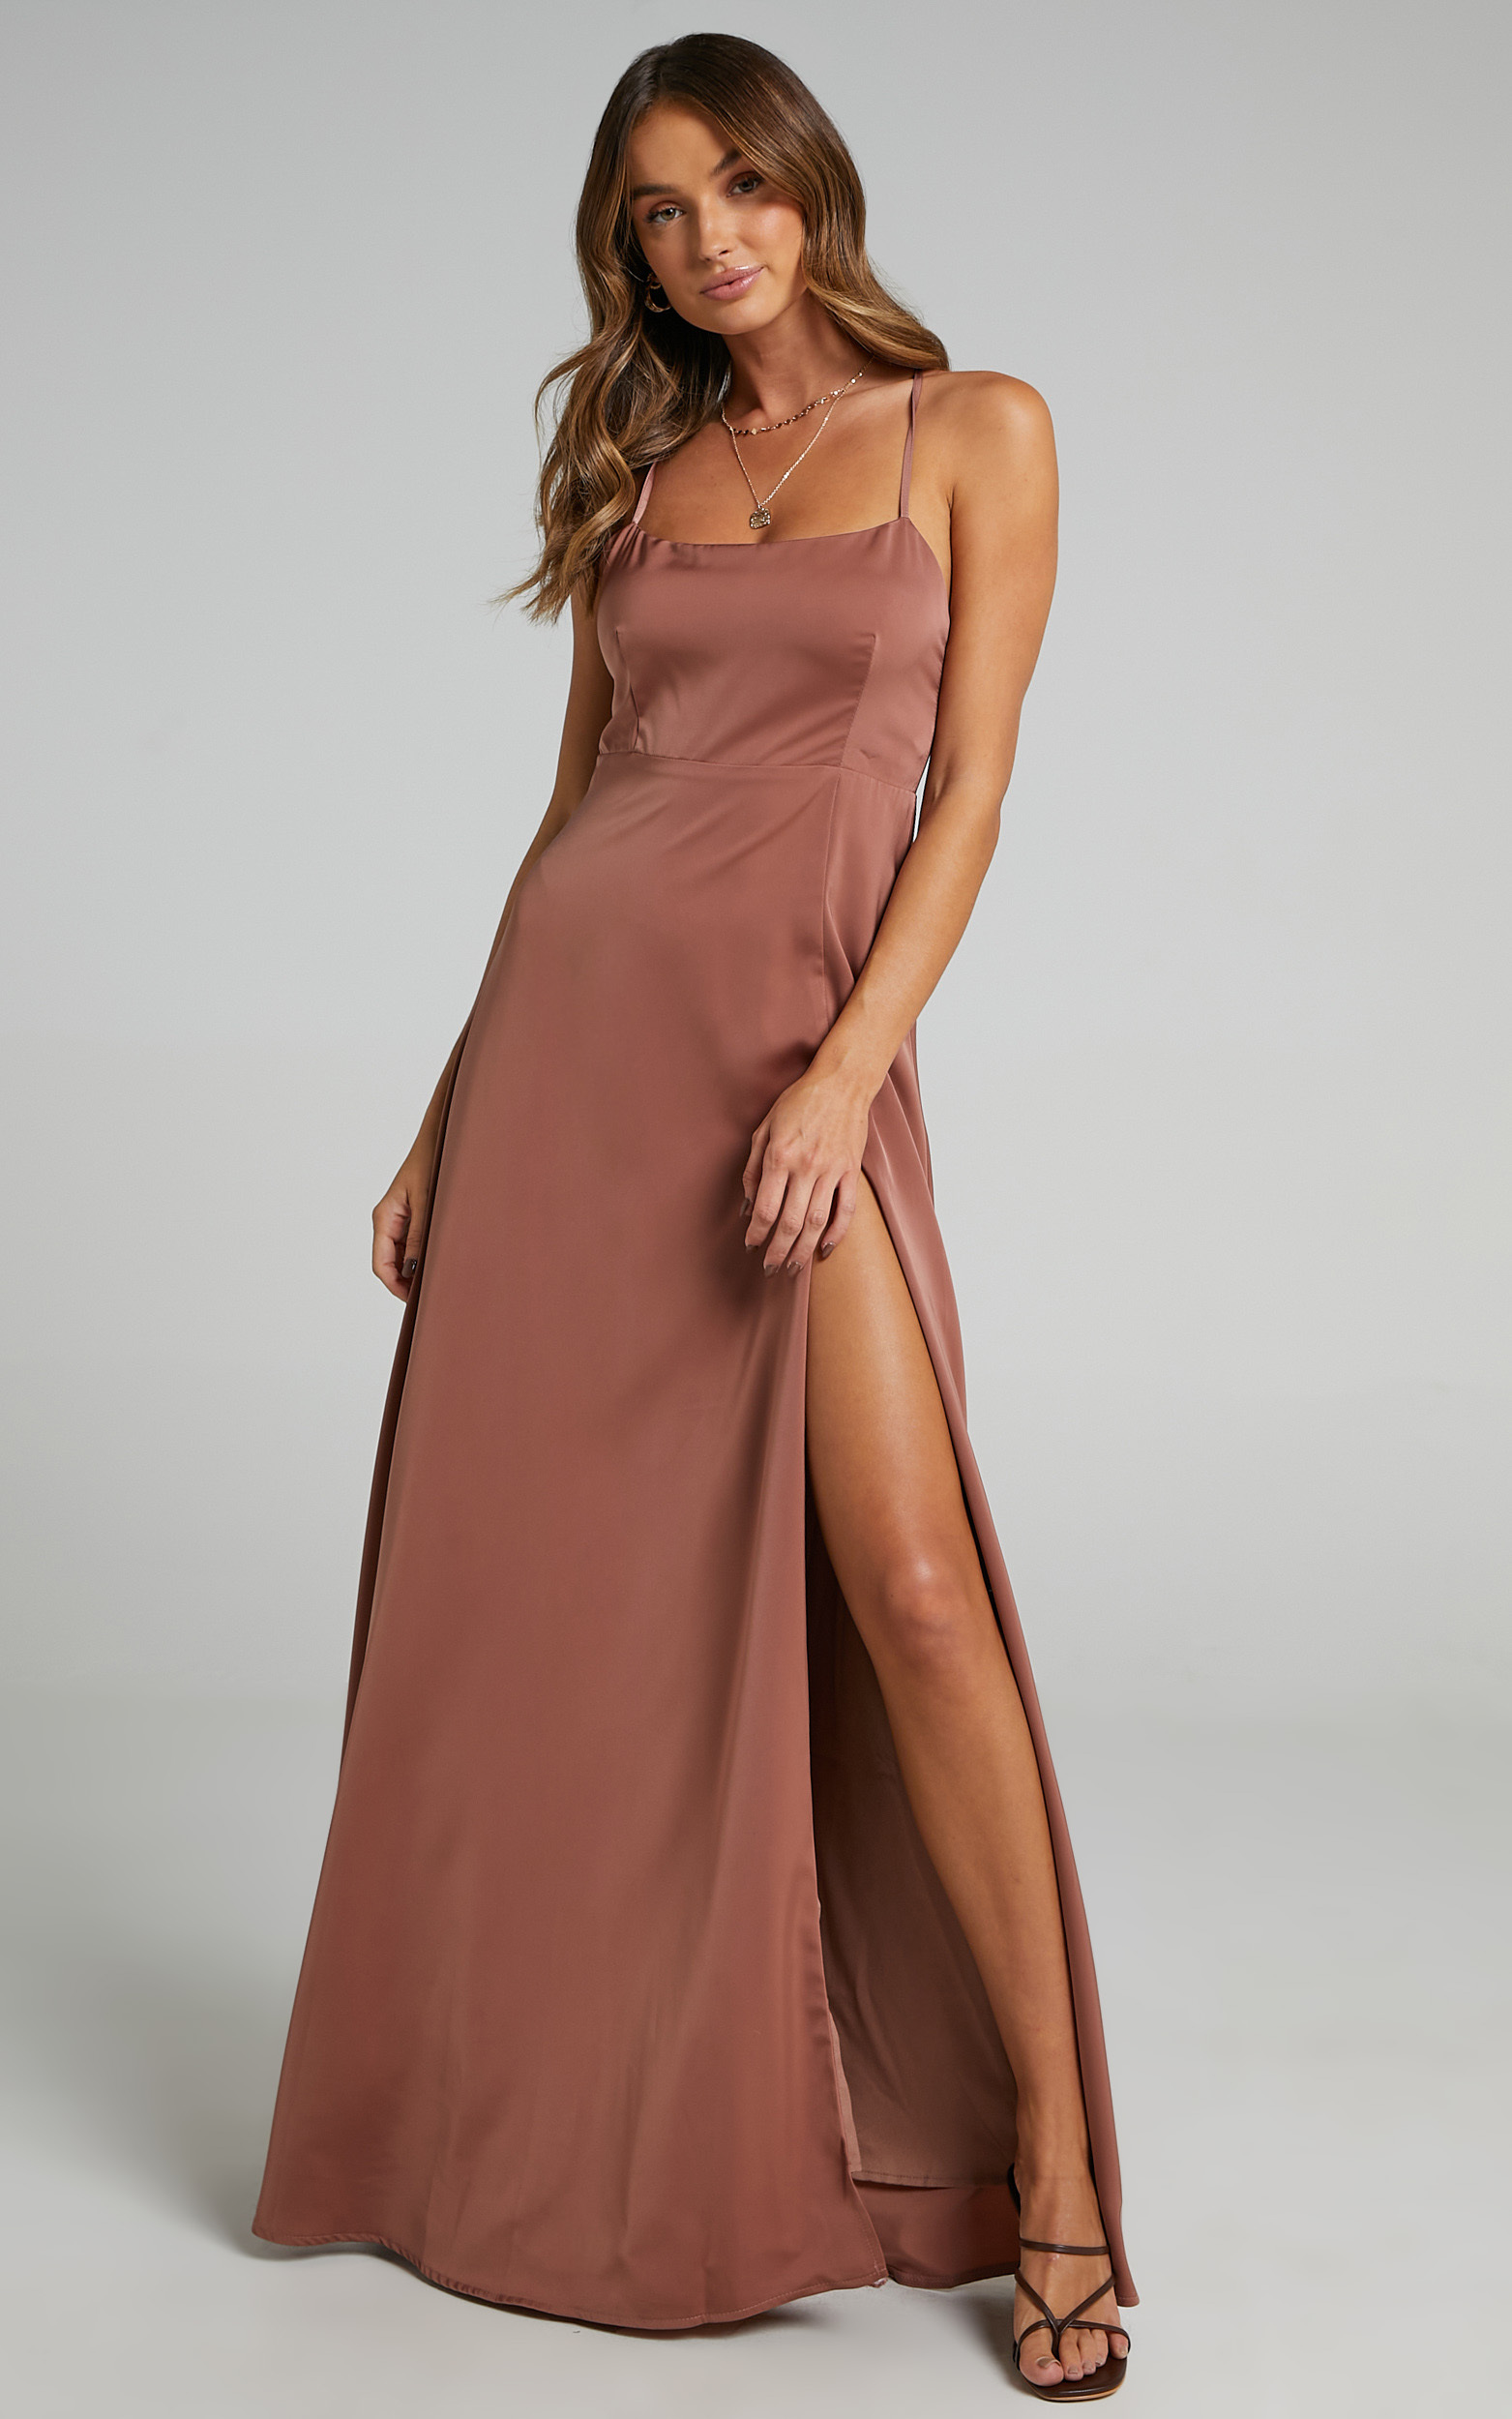 Will It Be Us Dress in Dusty Rose - 20, PNK4, hi-res image number null